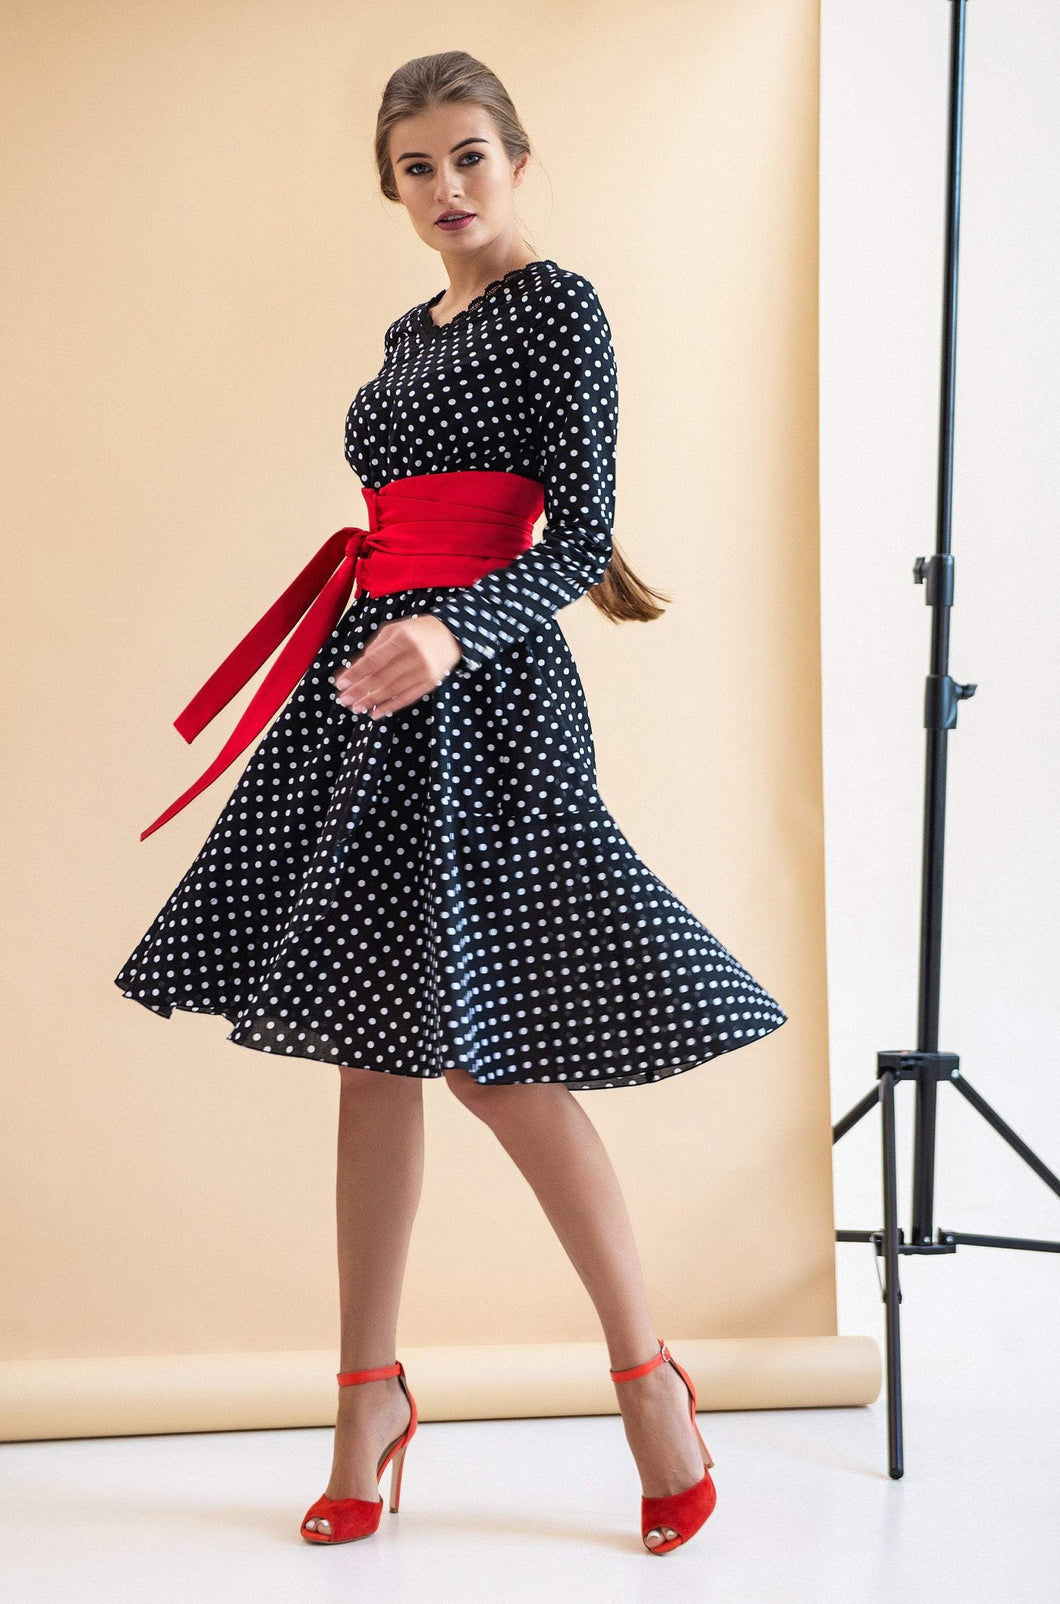 Polka dot long sleeve cotton dress with red belt